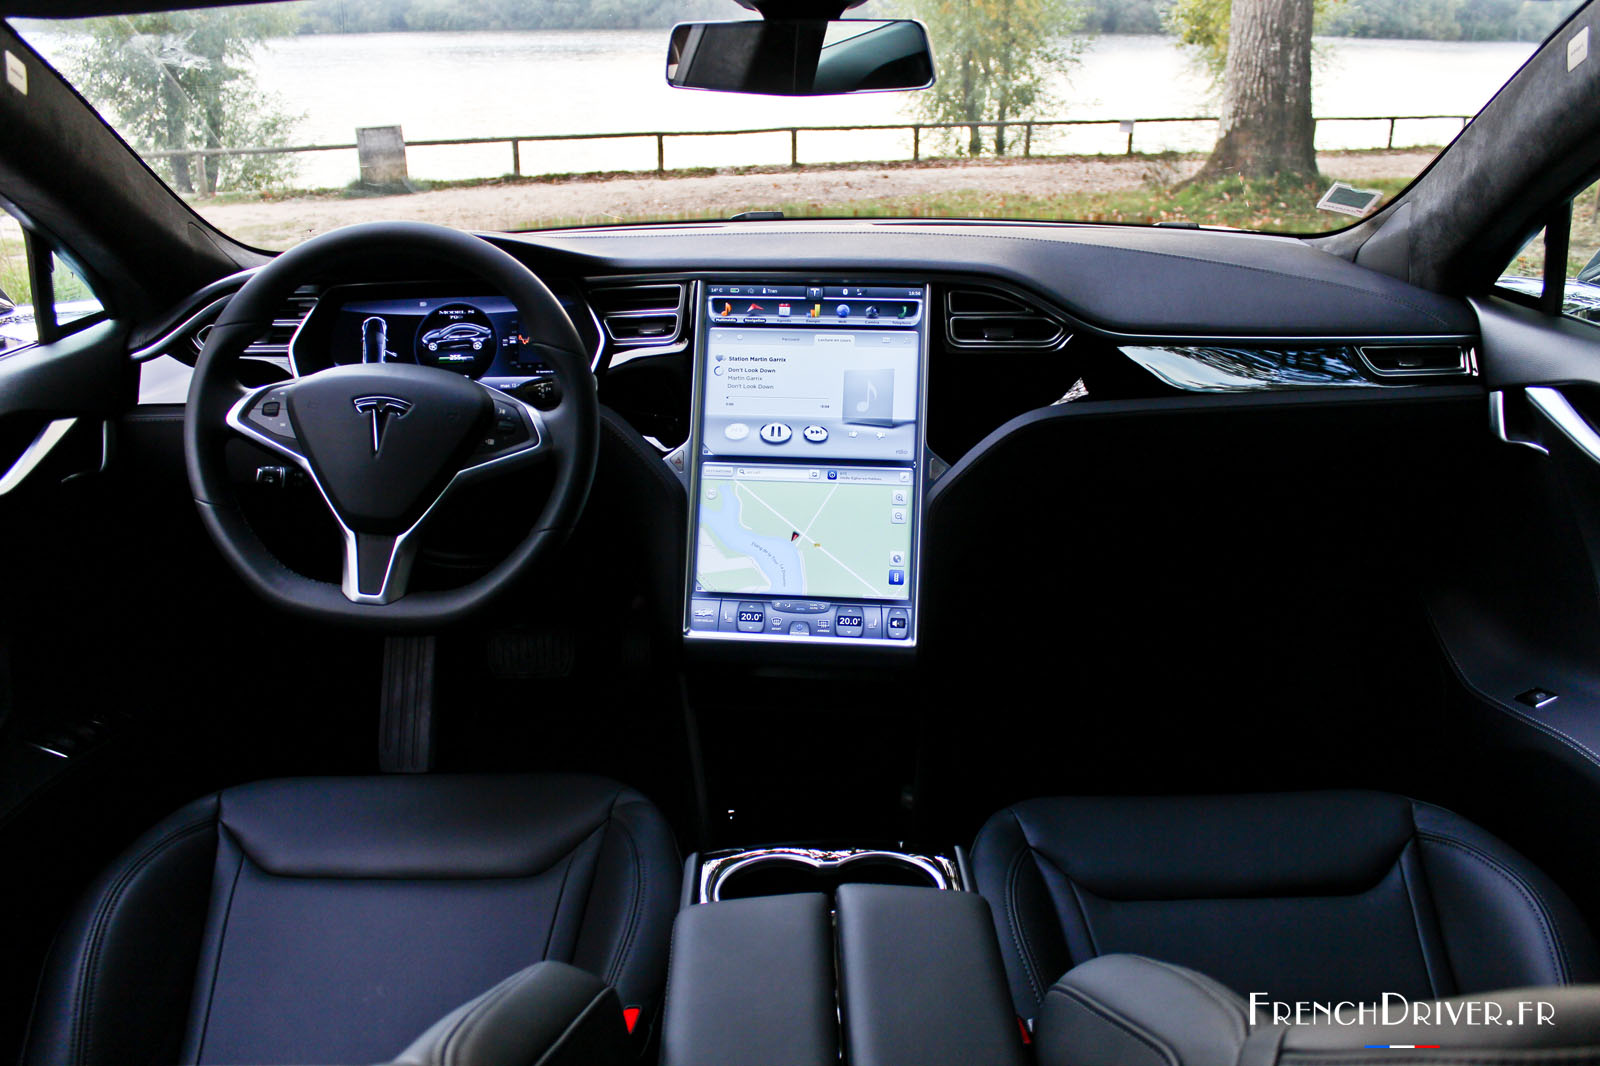 Essai de la tesla model s une berline lectrique aboutie for Interieur tesla model s